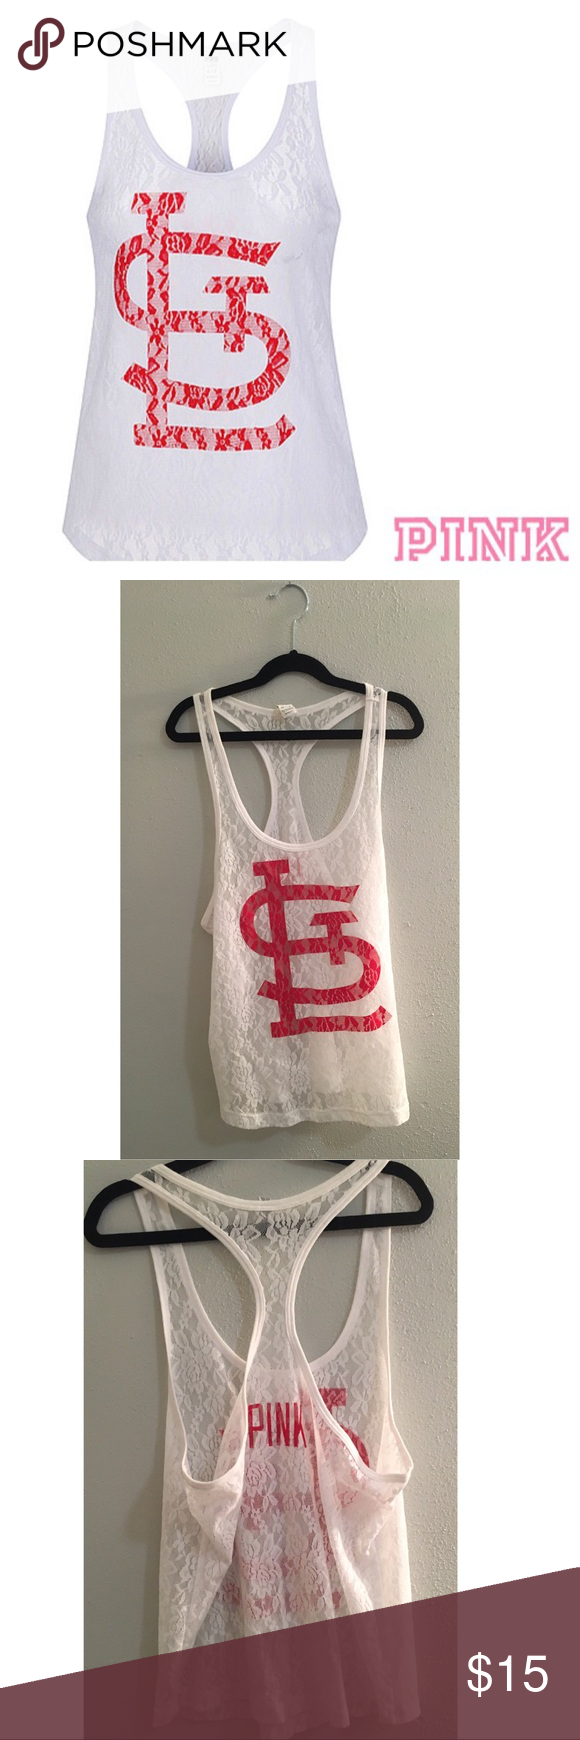 ⚾️MLB VS PINK Racerback⚾️ Super Cute, Lace, St. Louis Cardinals MLB Racerback Tank. Worn only a few times, in excellent condition! PINK Victoria's Secret Tops Tank Tops